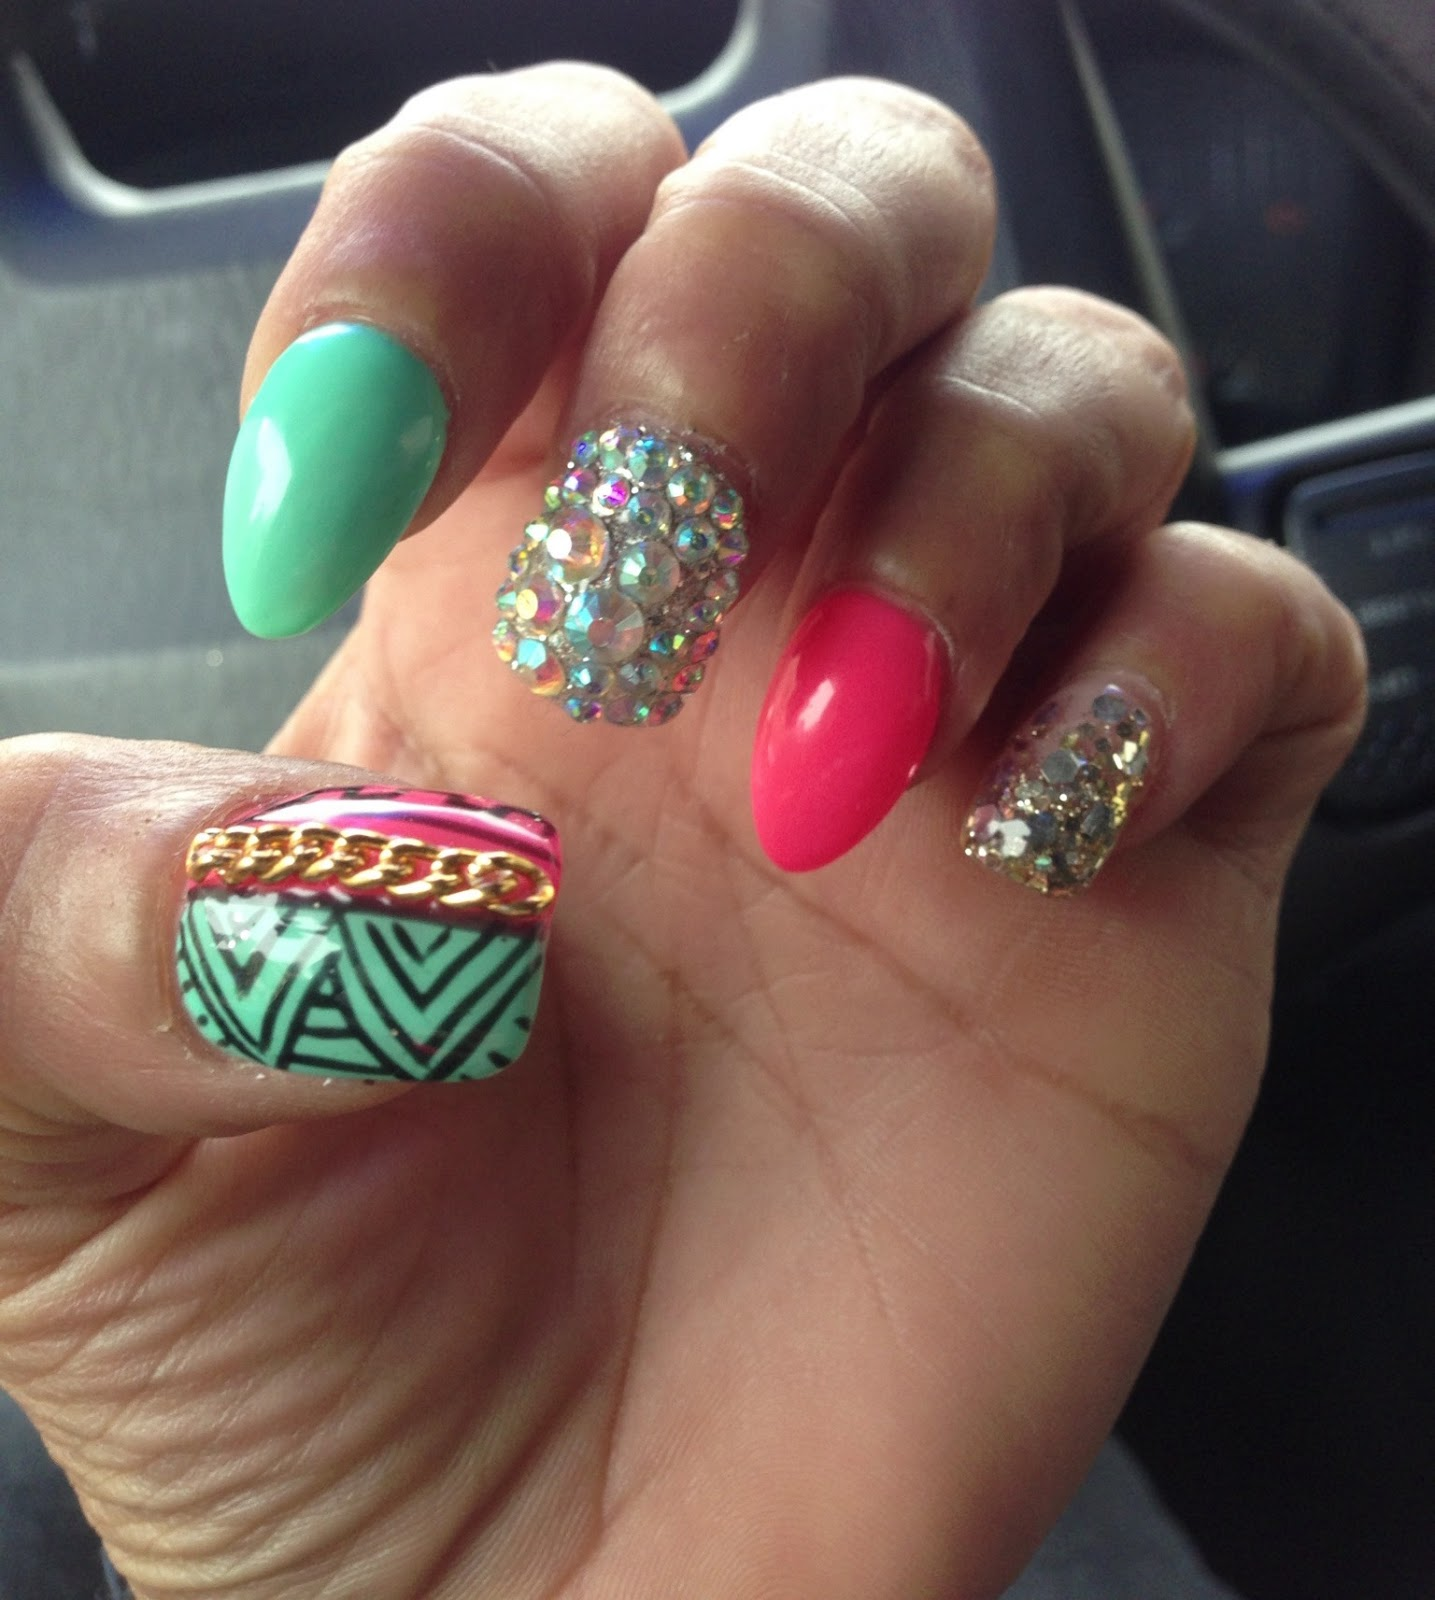 Amber Rose Nails | Steal Her Style |Stiletto Nails Amber Rose